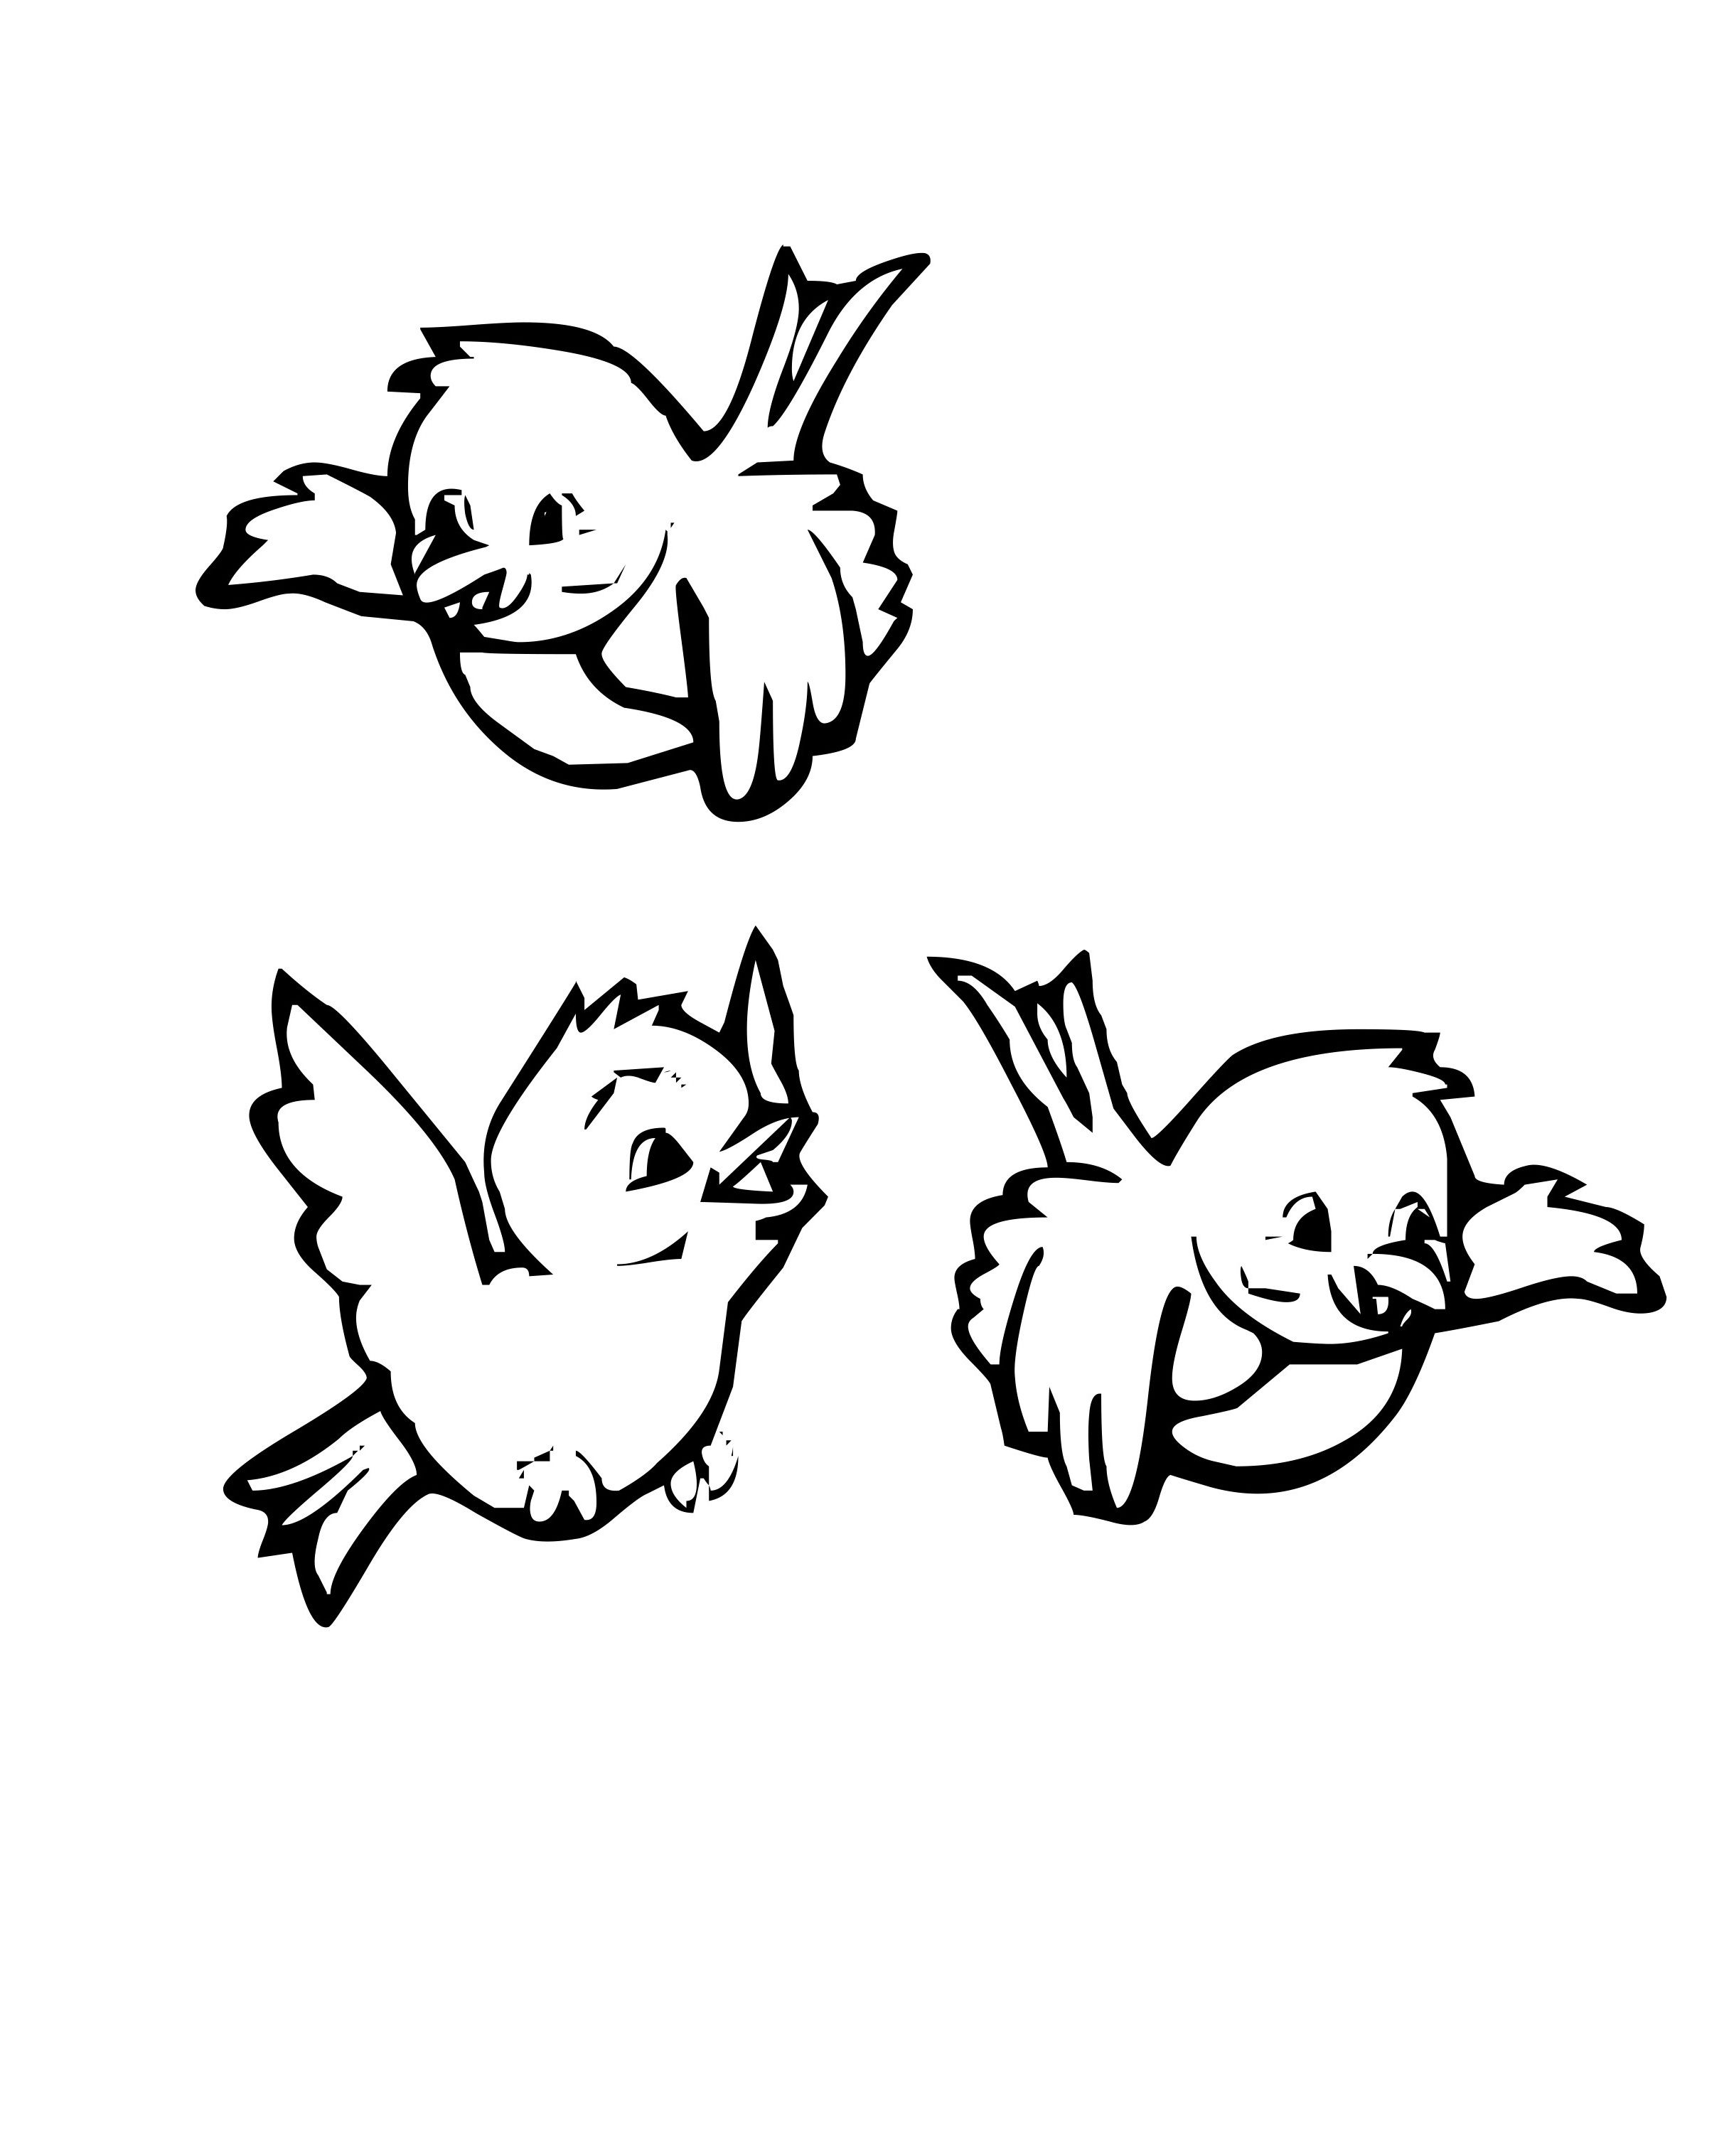 Three Small Birds Fly Coloring Pages For Kids Tg Printable Birds Coloring Pages For Kids Cool Coloring Pages Owl Coloring Pages Animal Coloring Pages